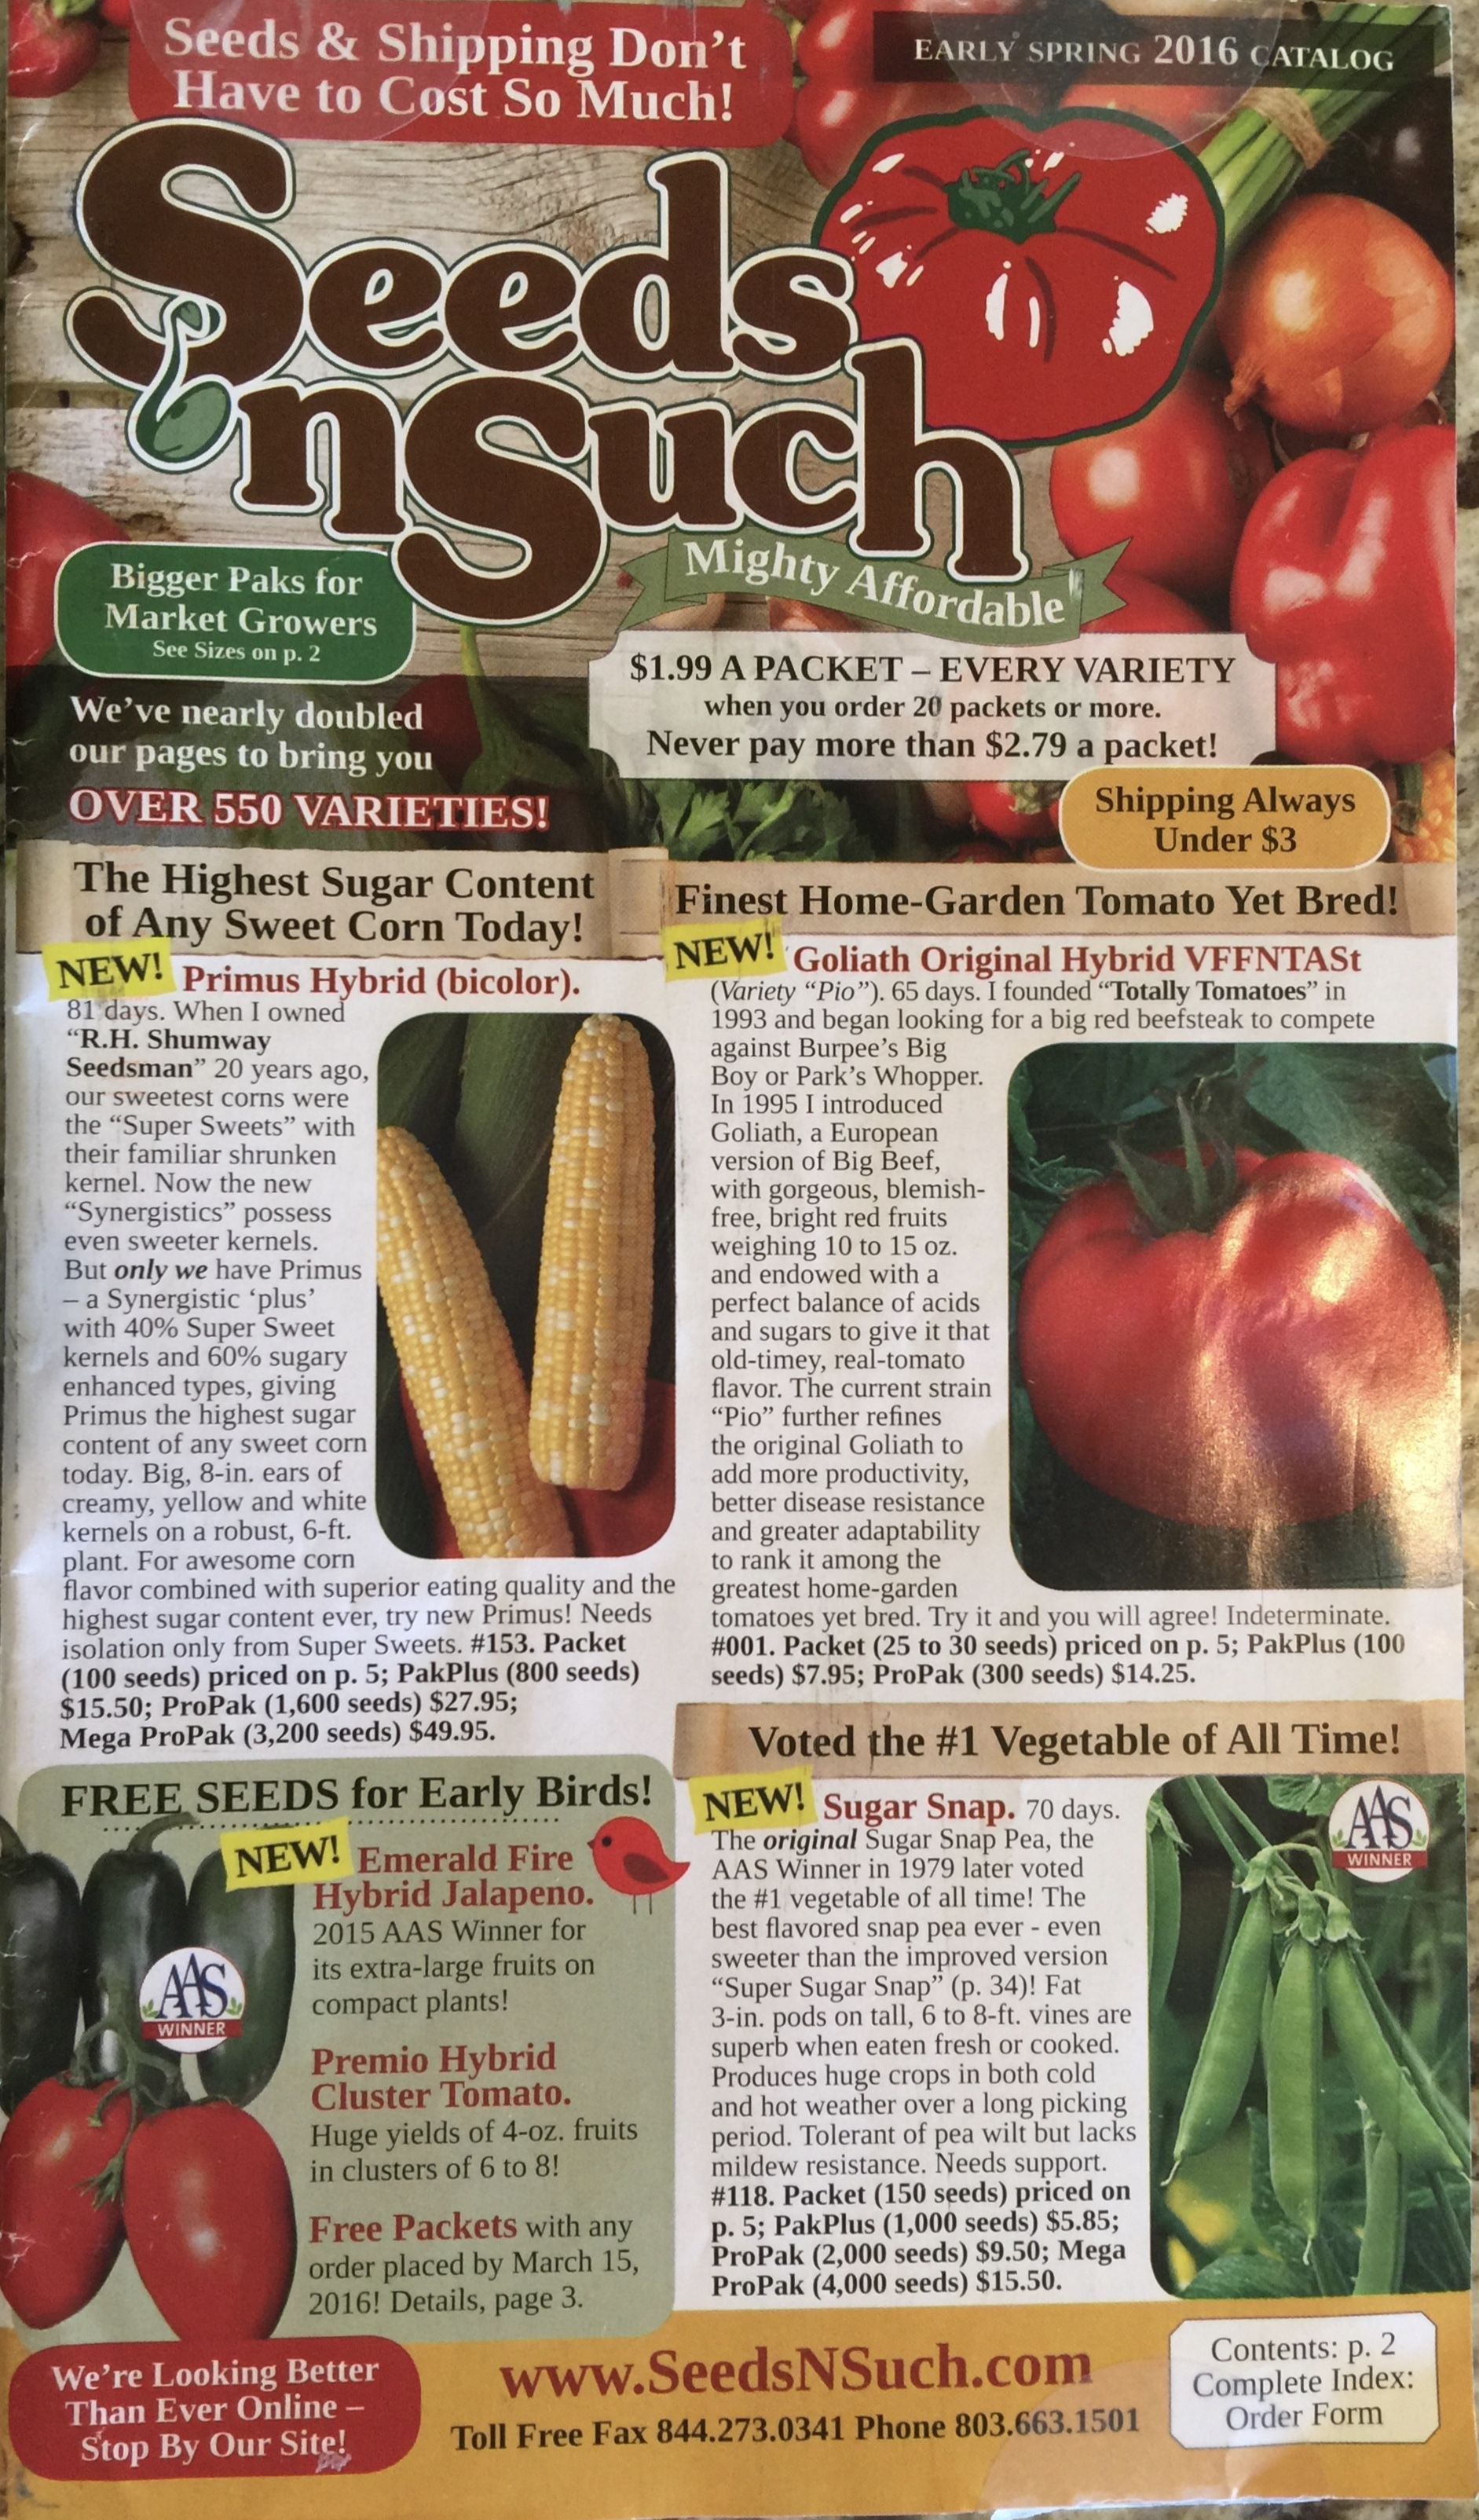 Johnny's is committed to helping growers and gardeners succeed with superior seeds, tools and service. Quality vegetable, herb and flower seeds including a large selection of certified organic seed.